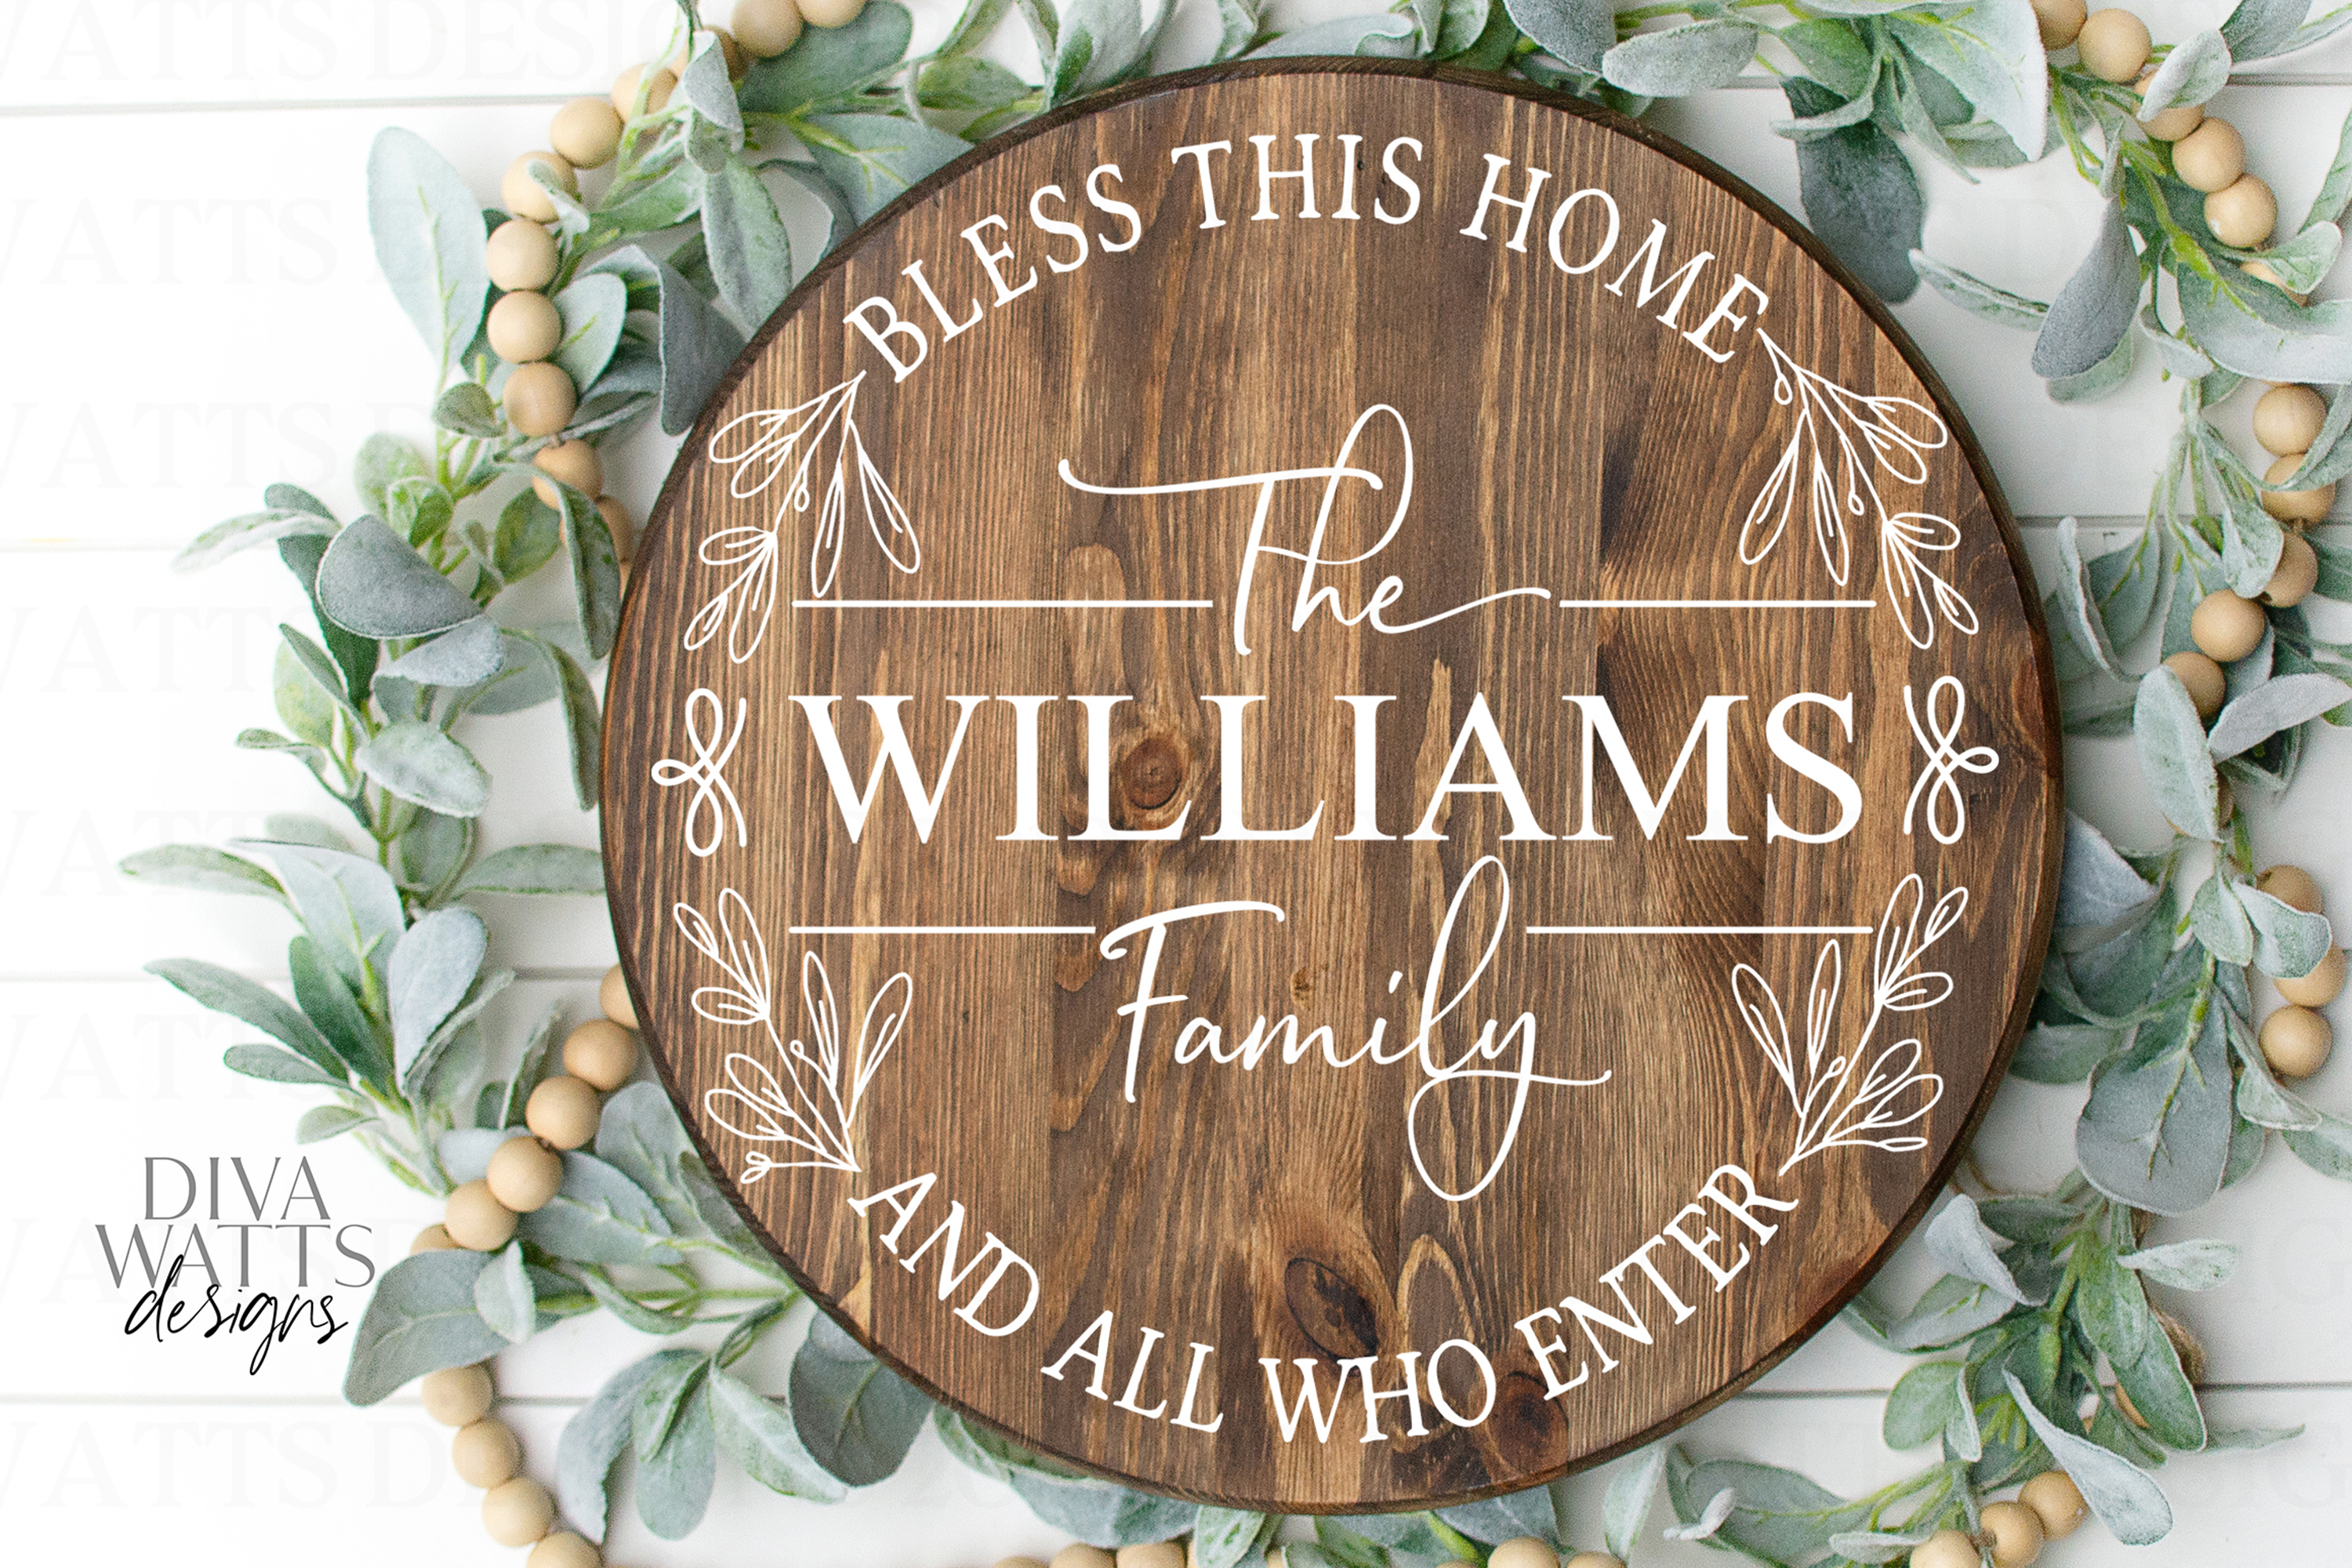 Bless This Home And All Who Enter - Family Name - Round SVG example image 2